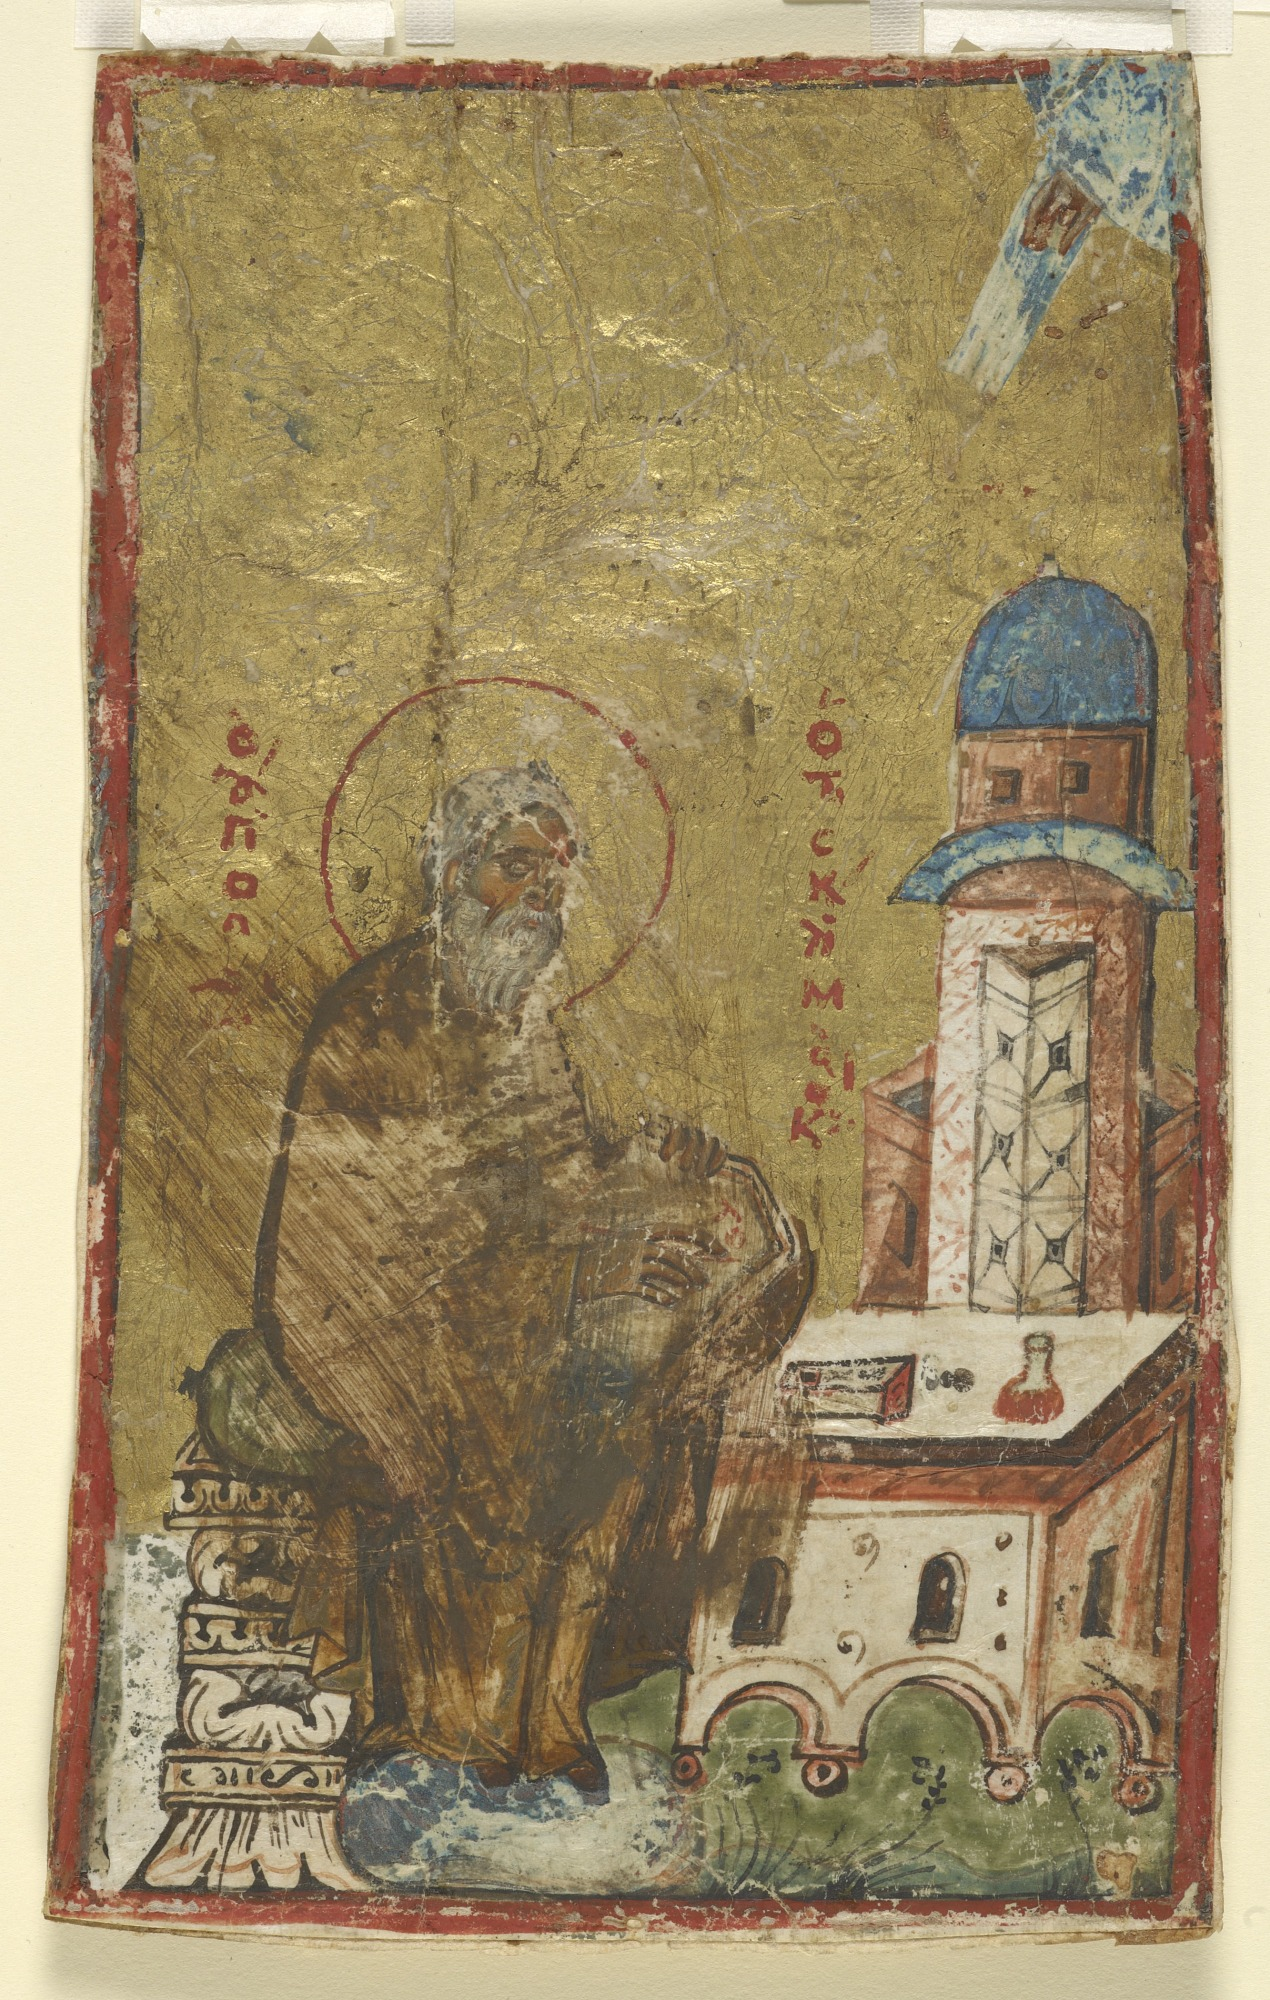 : St. John of the Ladder (Climacus): illustration from a Klimax manuscript